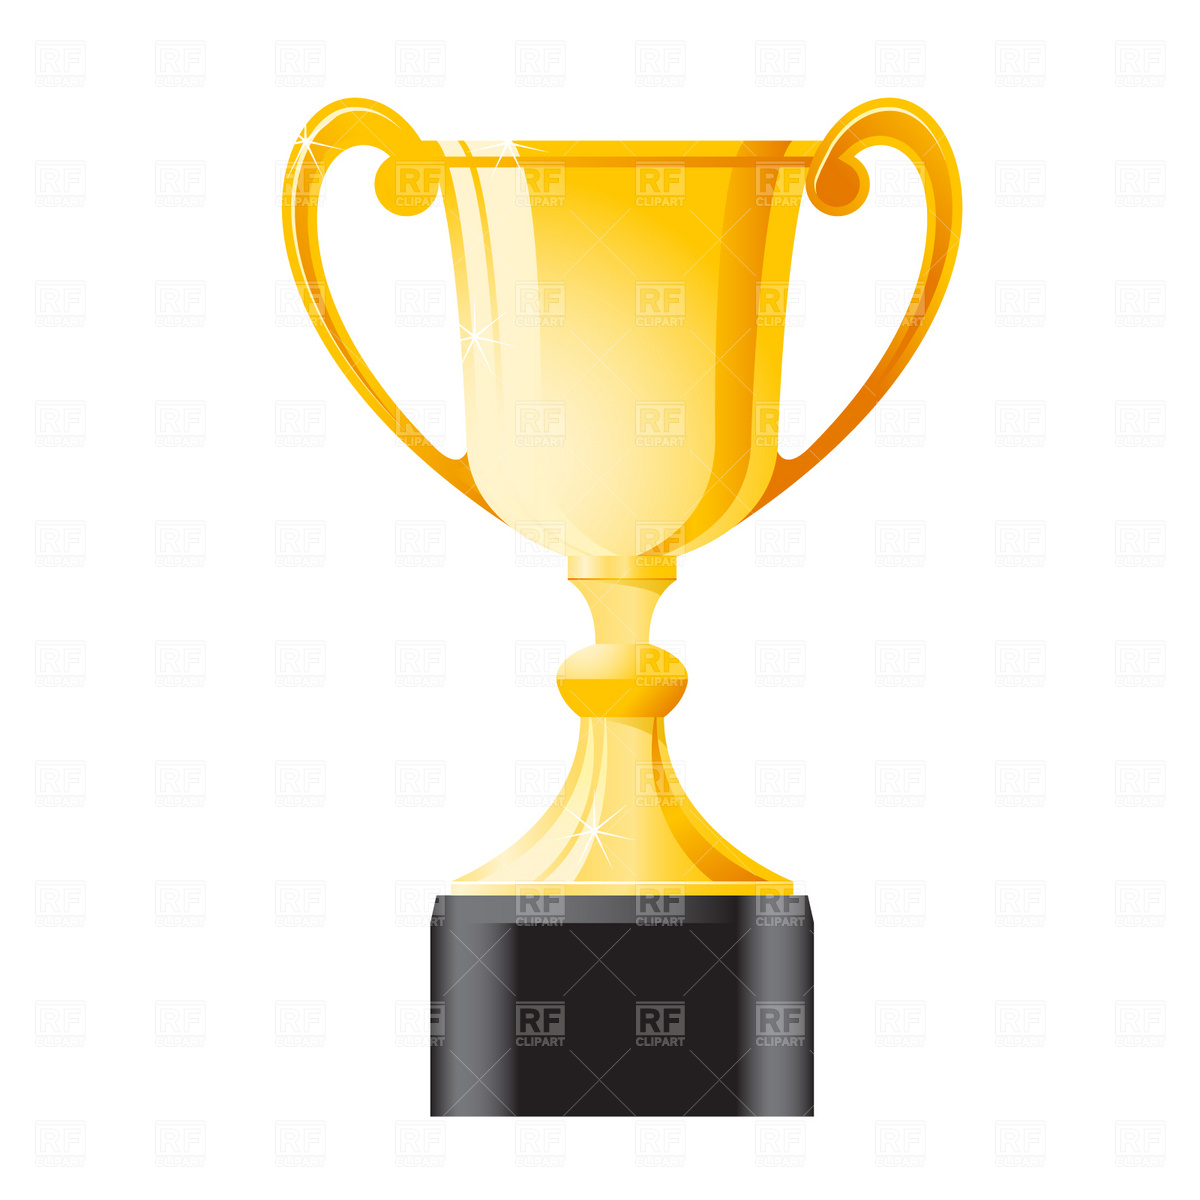 15 Large Trophy Vector Art Images